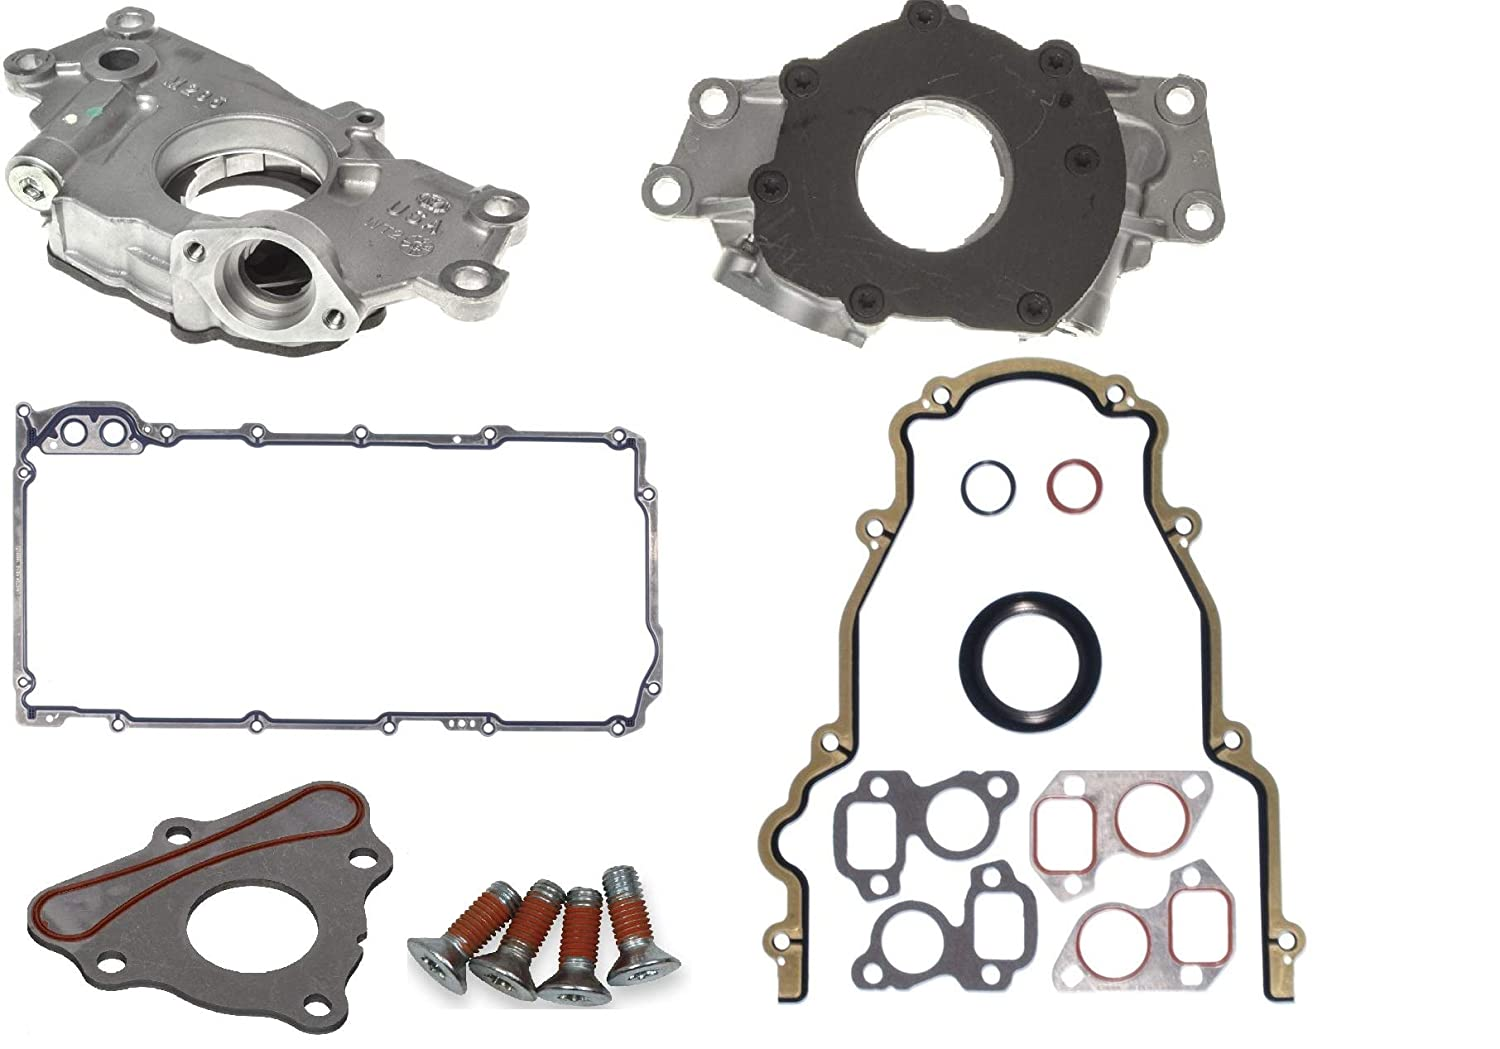 Oil Pump /& Timing Cover /& Camshaft Locking Plate with Recessed Bolts compatible with 1999-2009 Chevrolet GMC 4.8L 5.3L 6.0L 325